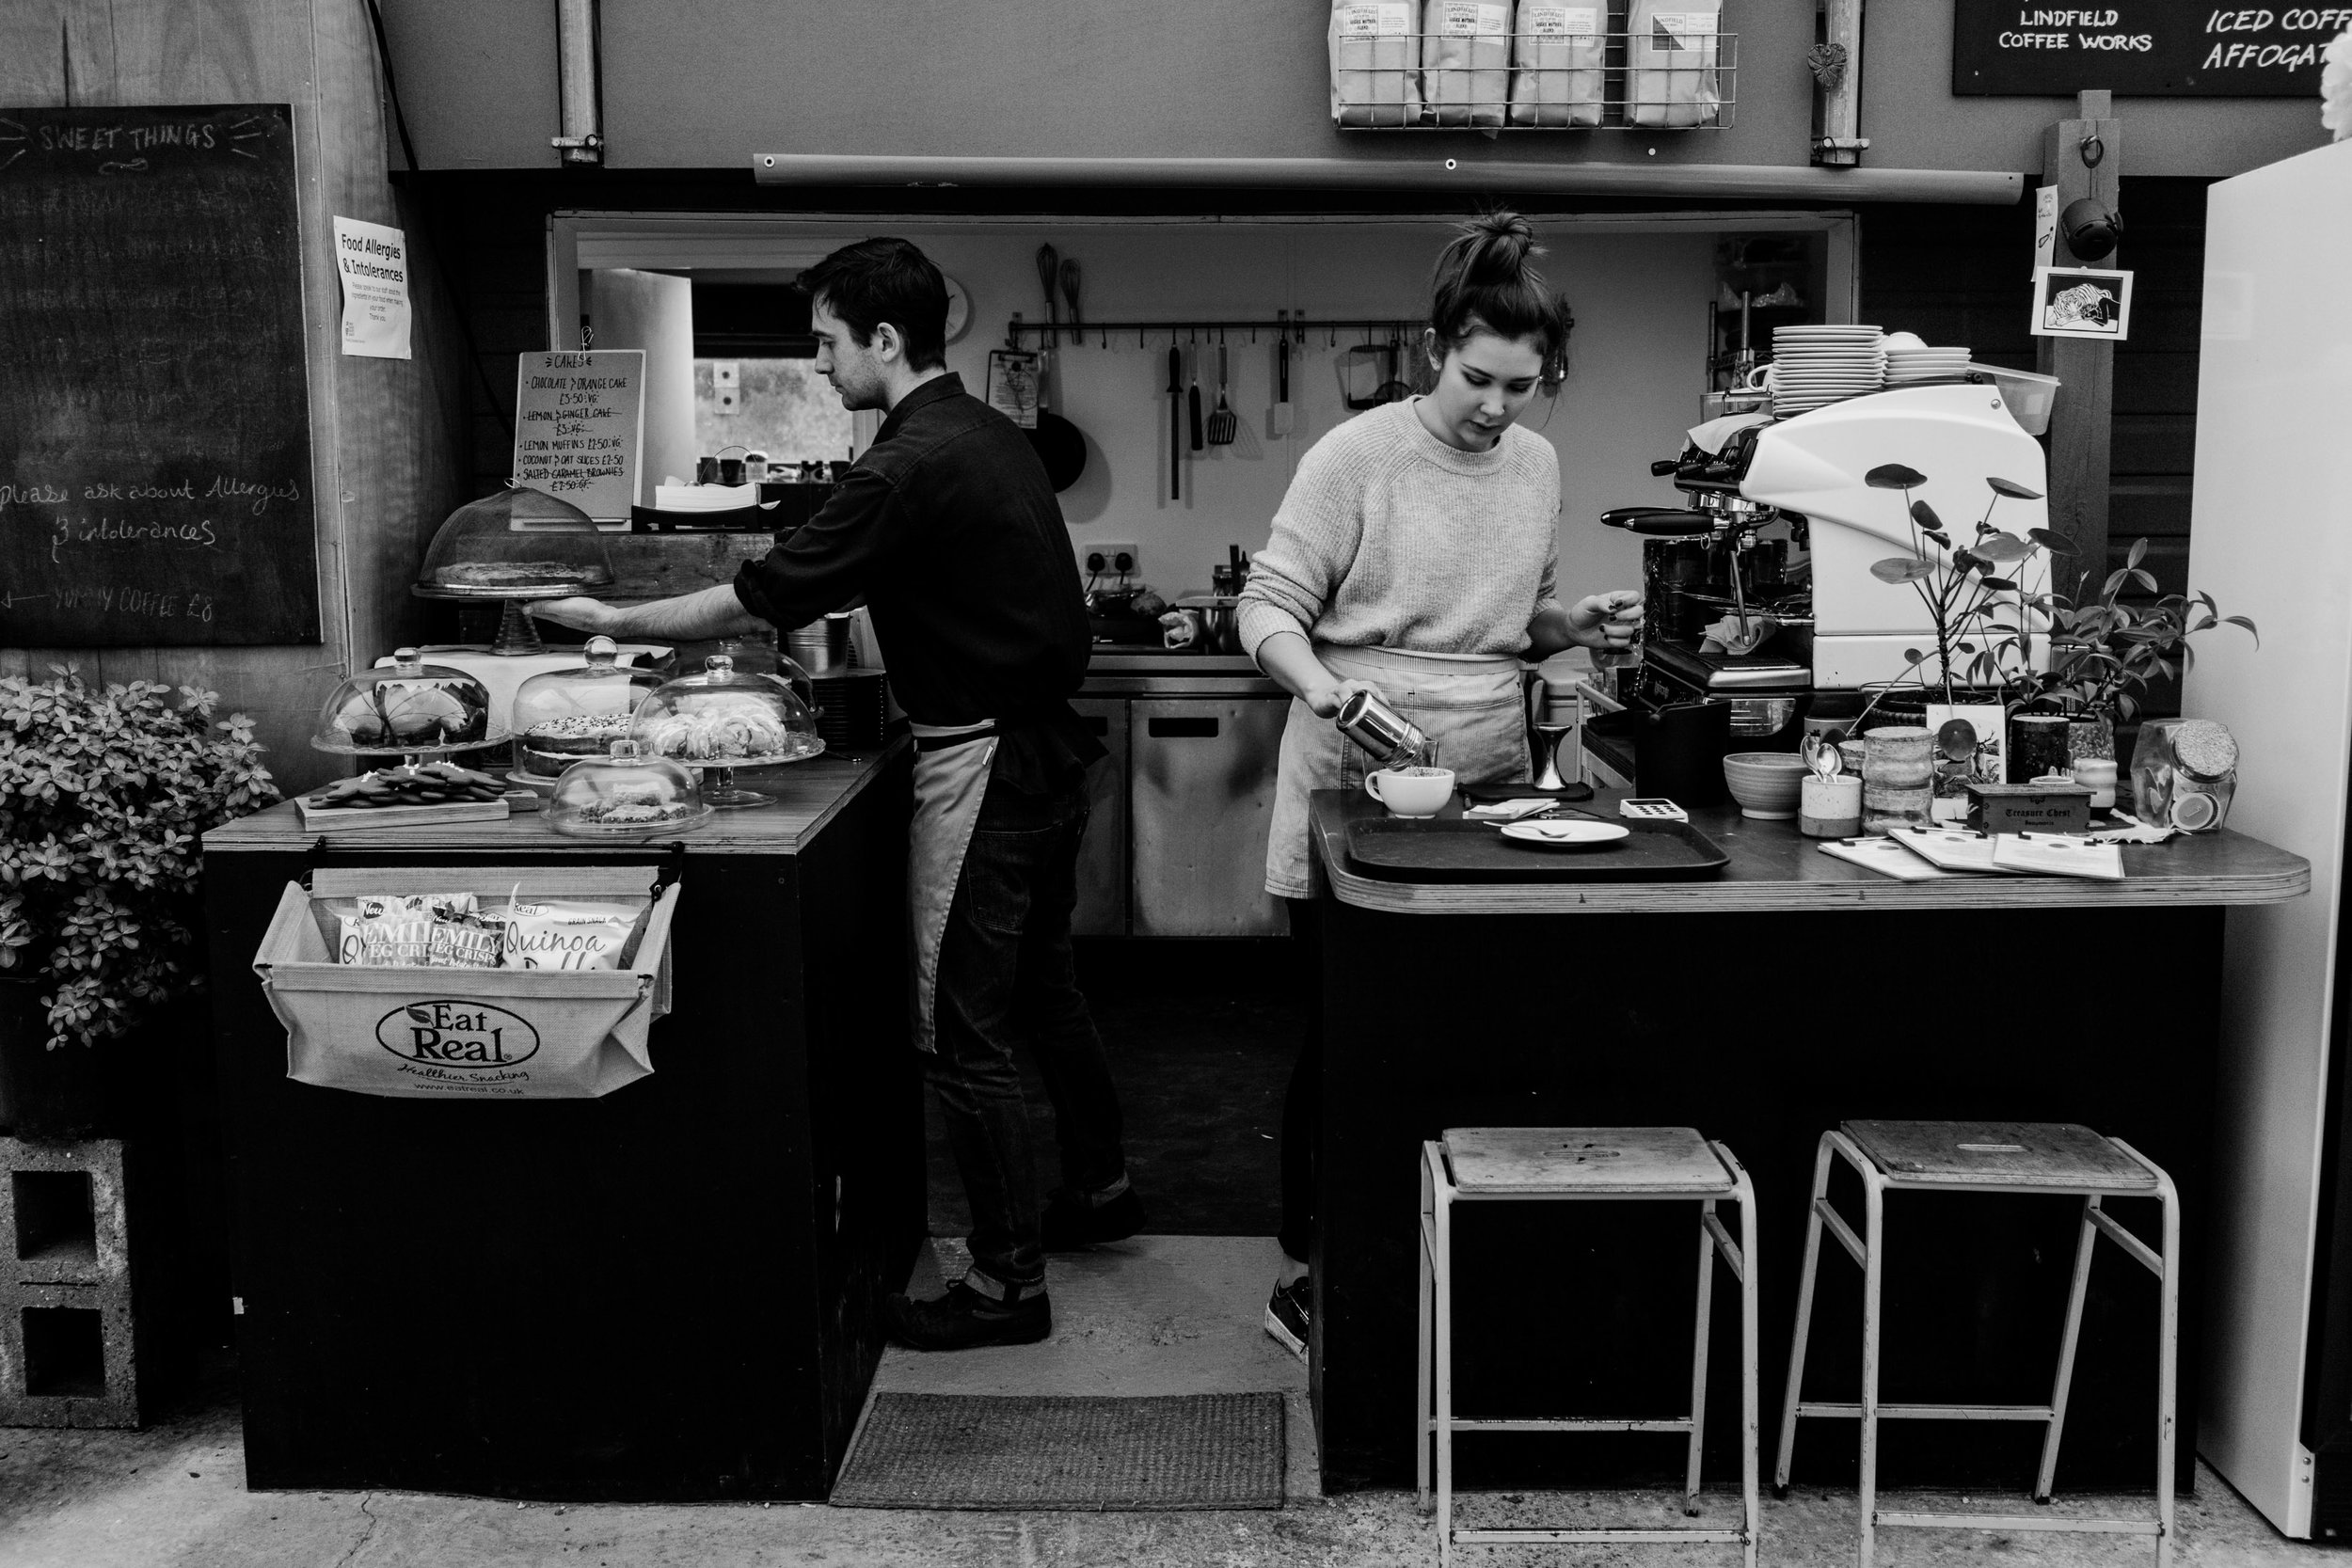 Sussex-mother-cafe-employees-working.jpg